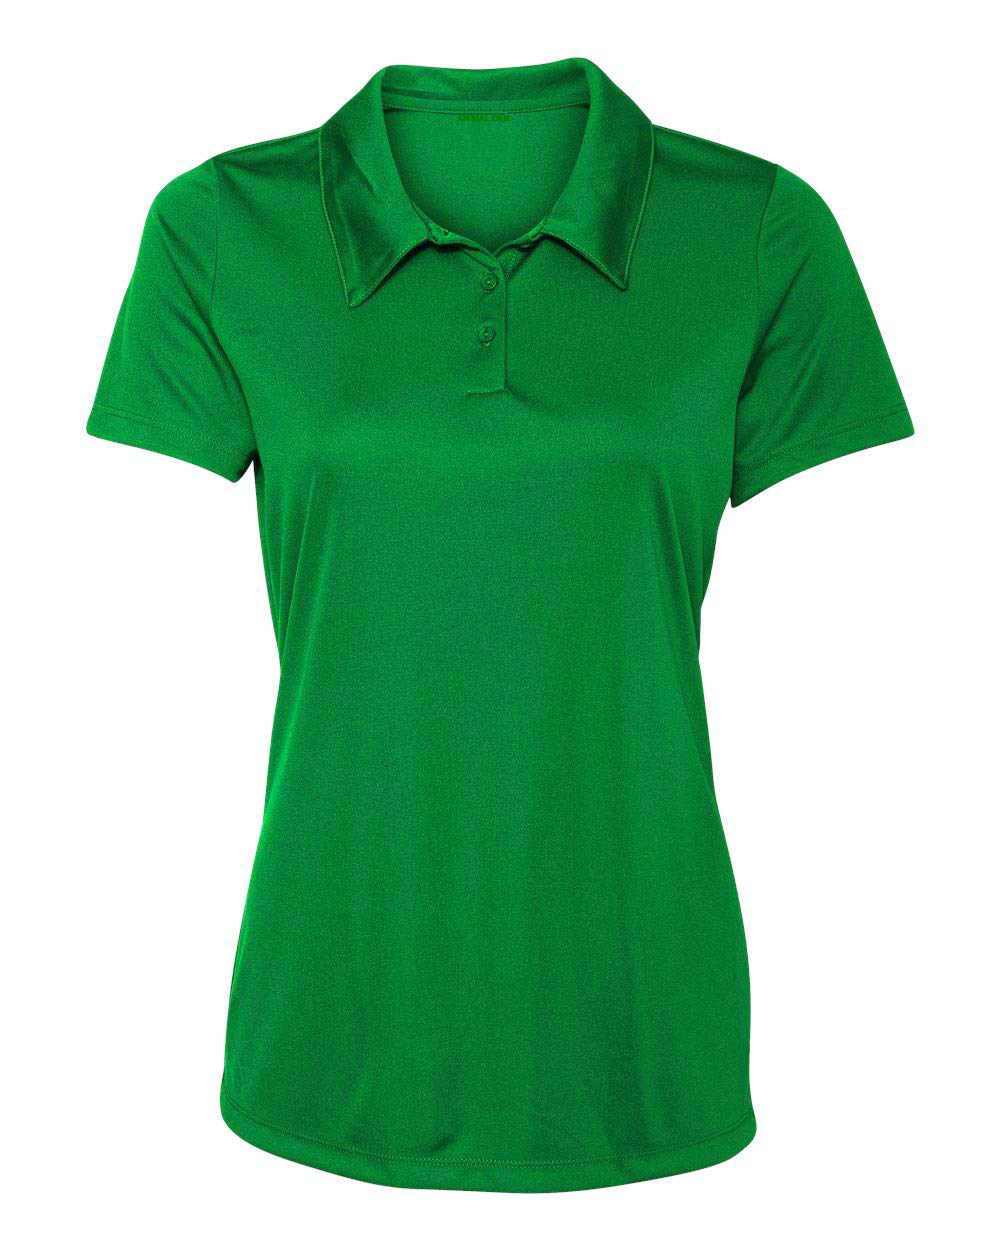 Animal Den Women's Dry-Fit Golf Polo Shirts 3-Button Golf Polo's in 20 Colors XS-3XL Shirt KLYGRN-3XL by Animal Den